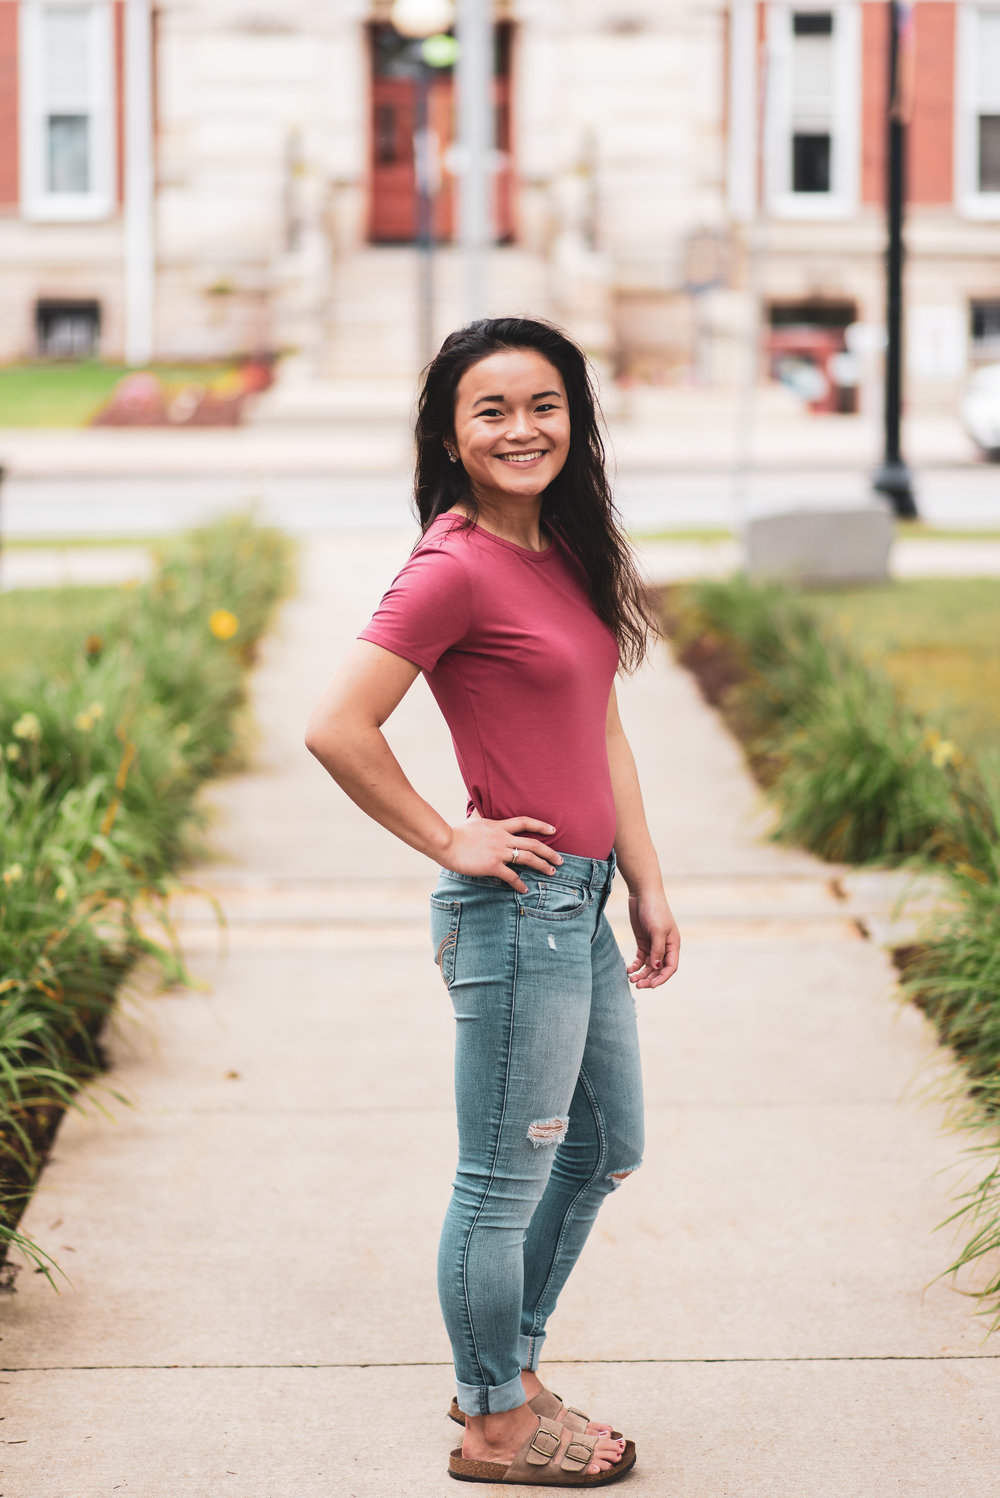 Clarion PA senior portrait model in town square